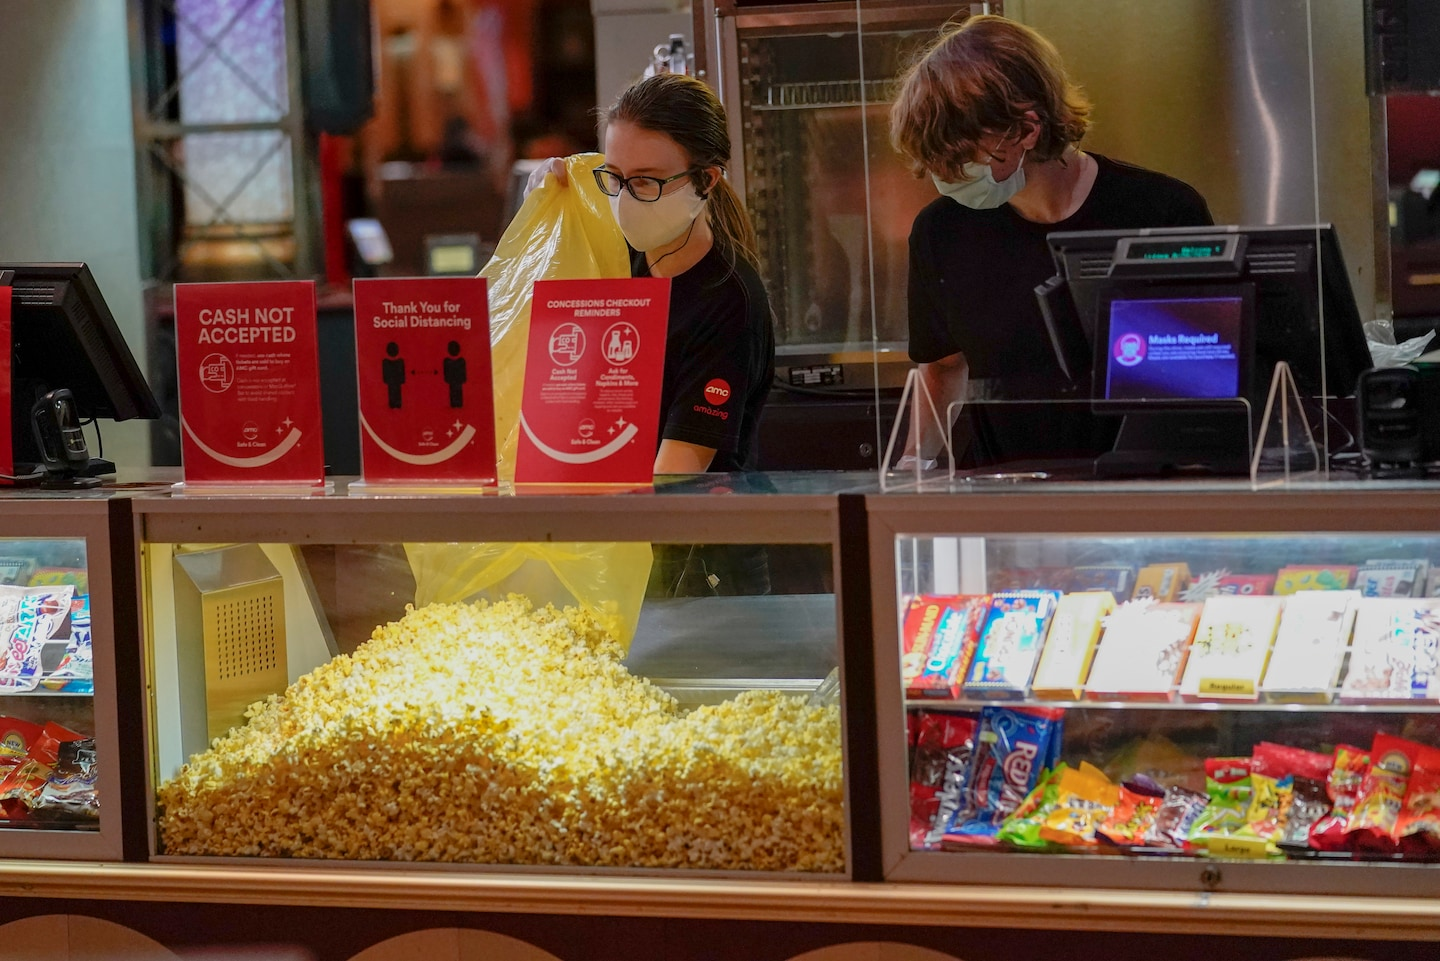 As movie theaters reopen nationwide, some employees are reluctant to return: 'They really are putting money above people's lives'